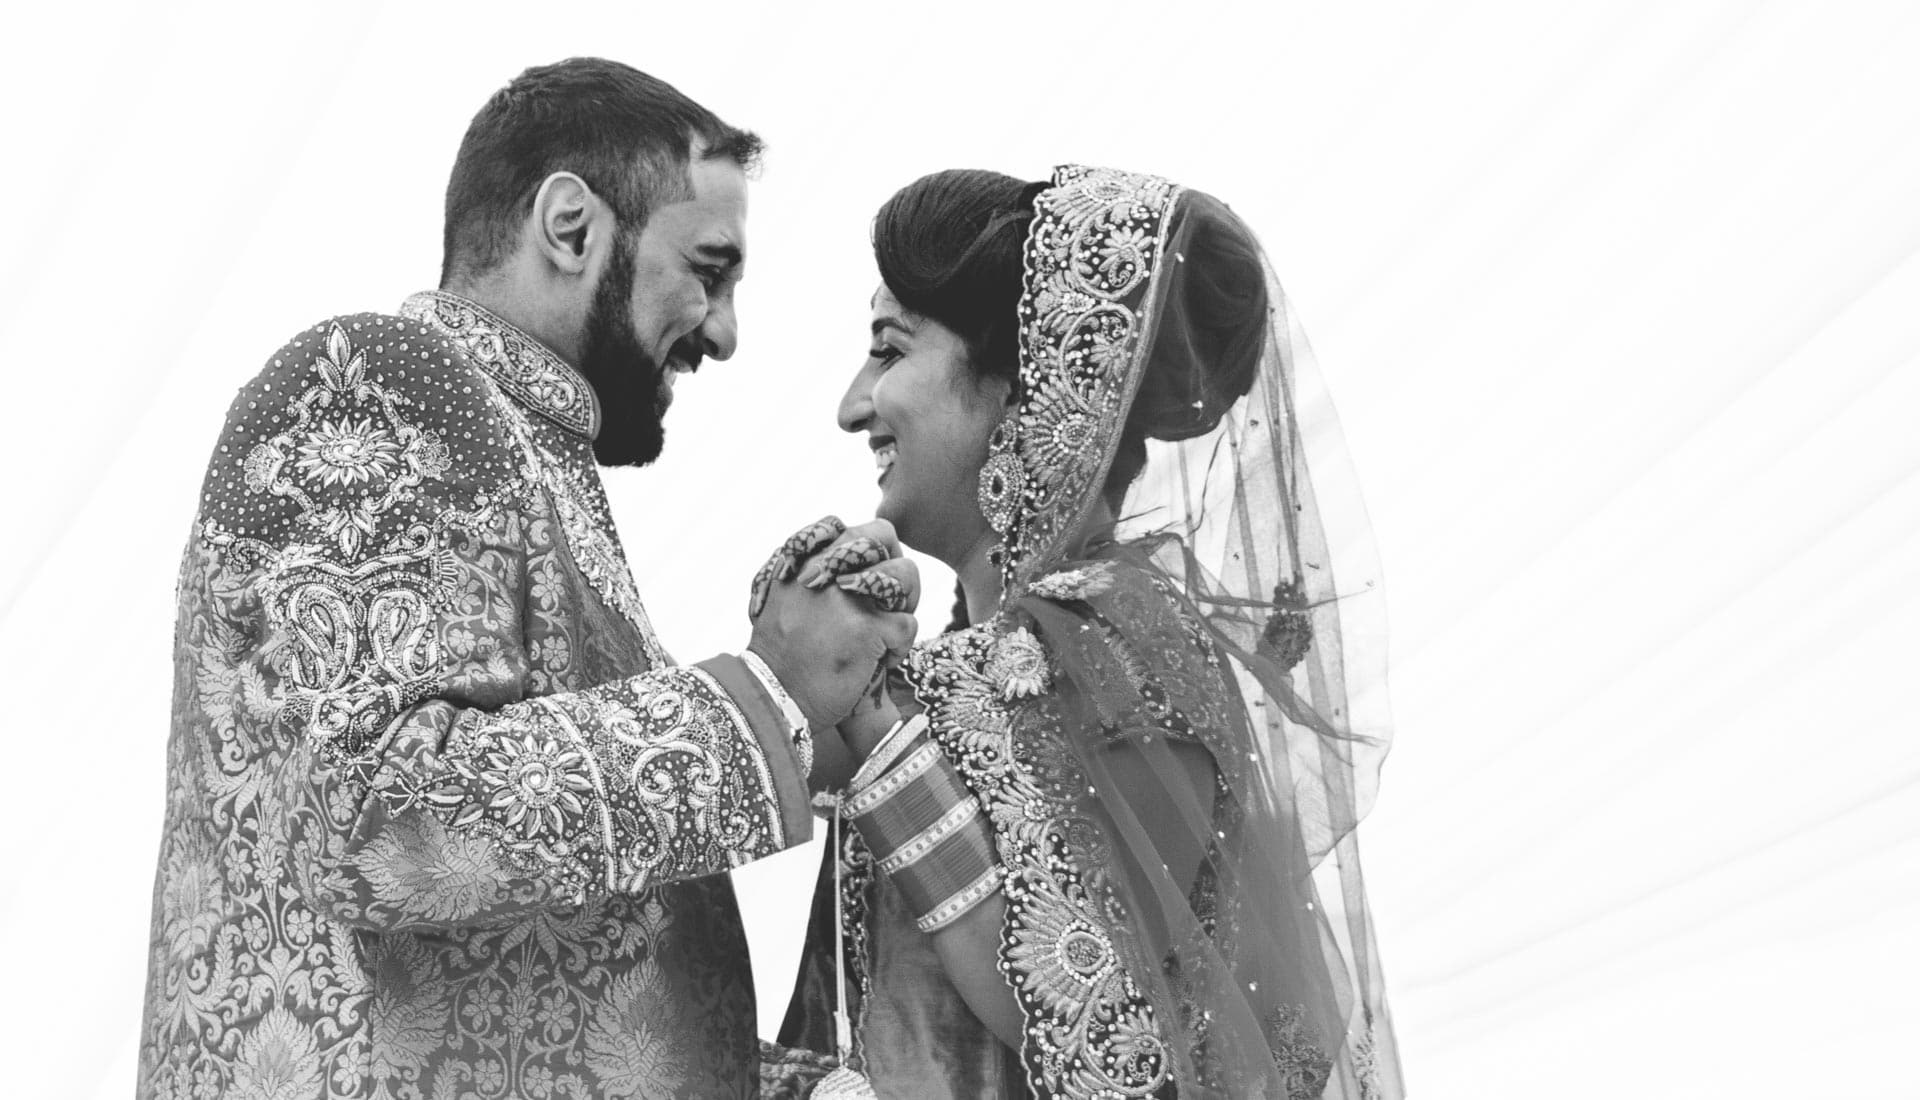 Asian wedding photography Birmingham, Sikh wedding photography Birmingham area. Bride and groom, first dance